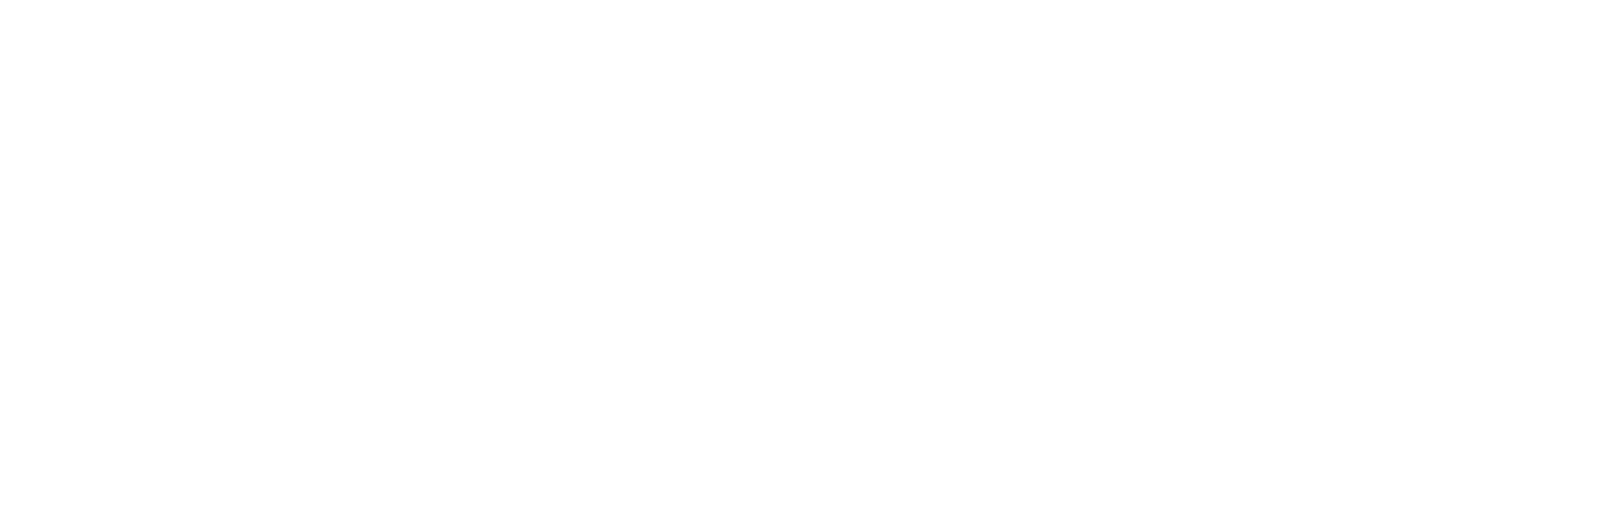 Banner showing that Arteric was named an MM&M Best Place to Work and an MM&M Top 100 agency; won 25 recent design awards; won a W3 Biotech website award; was included in Gartner's list of agencies with a record of creating commercial value with artificial intelligence